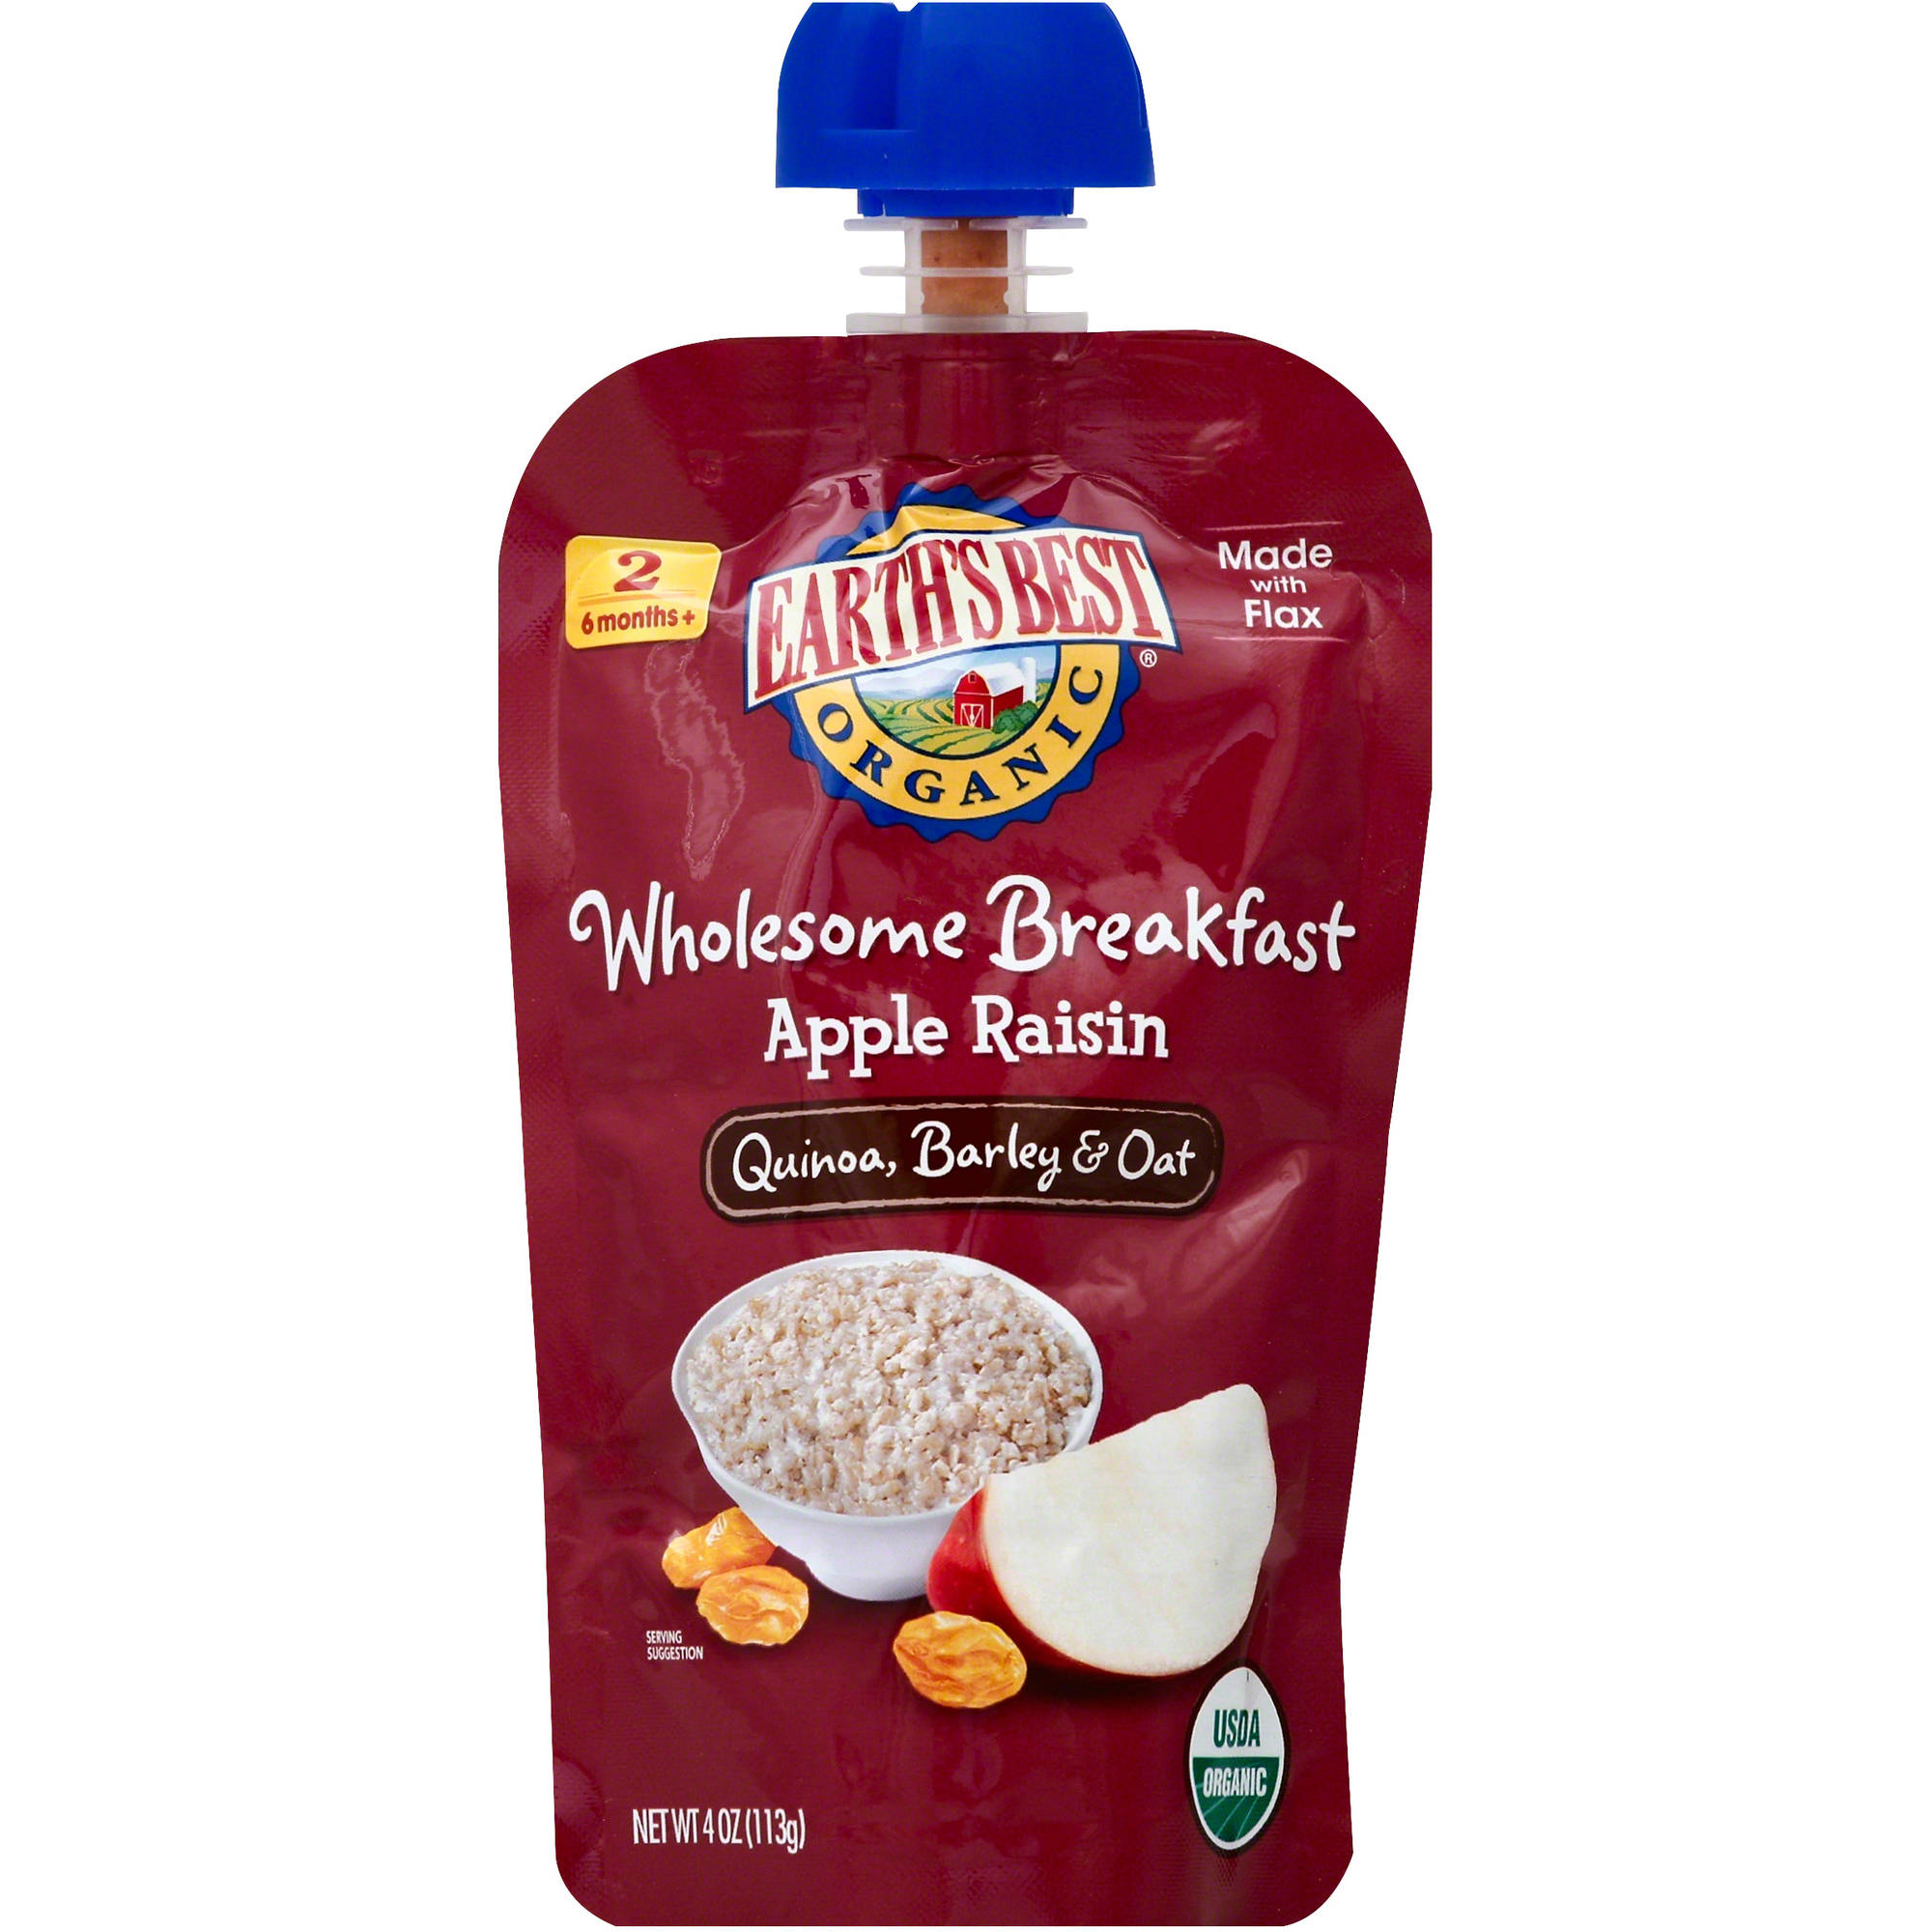 Earth's Best Organic Apple Raisin Wholesome Breakfast, 4 oz, (Pack of 6)